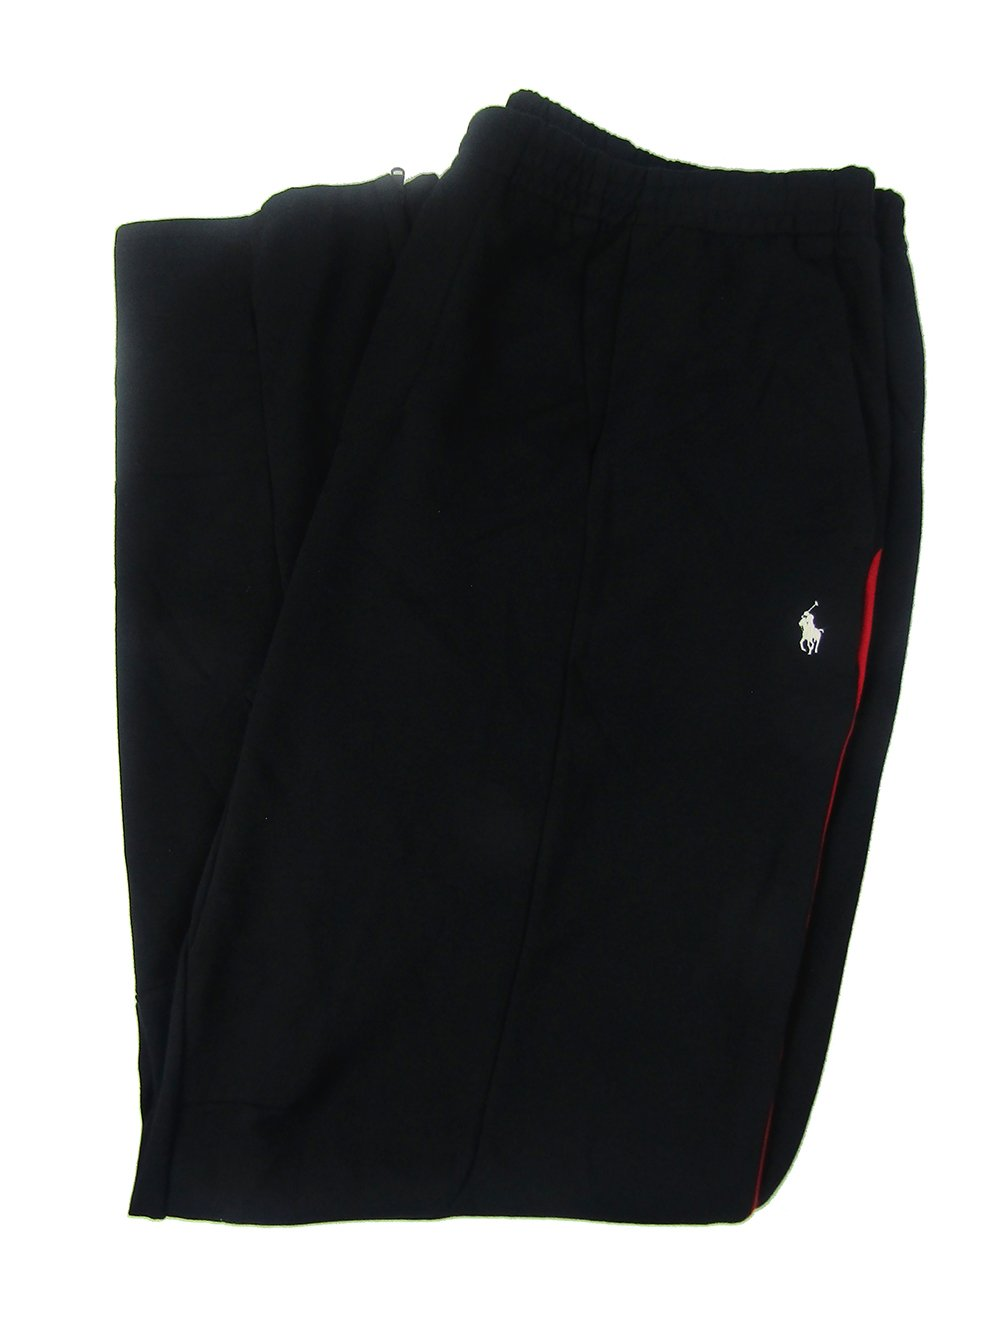 Polo Ralph Lauren Men's Big & Tall Double-Knit Track Pants (3LT, Black/Red) by Polo Ralph Lauren